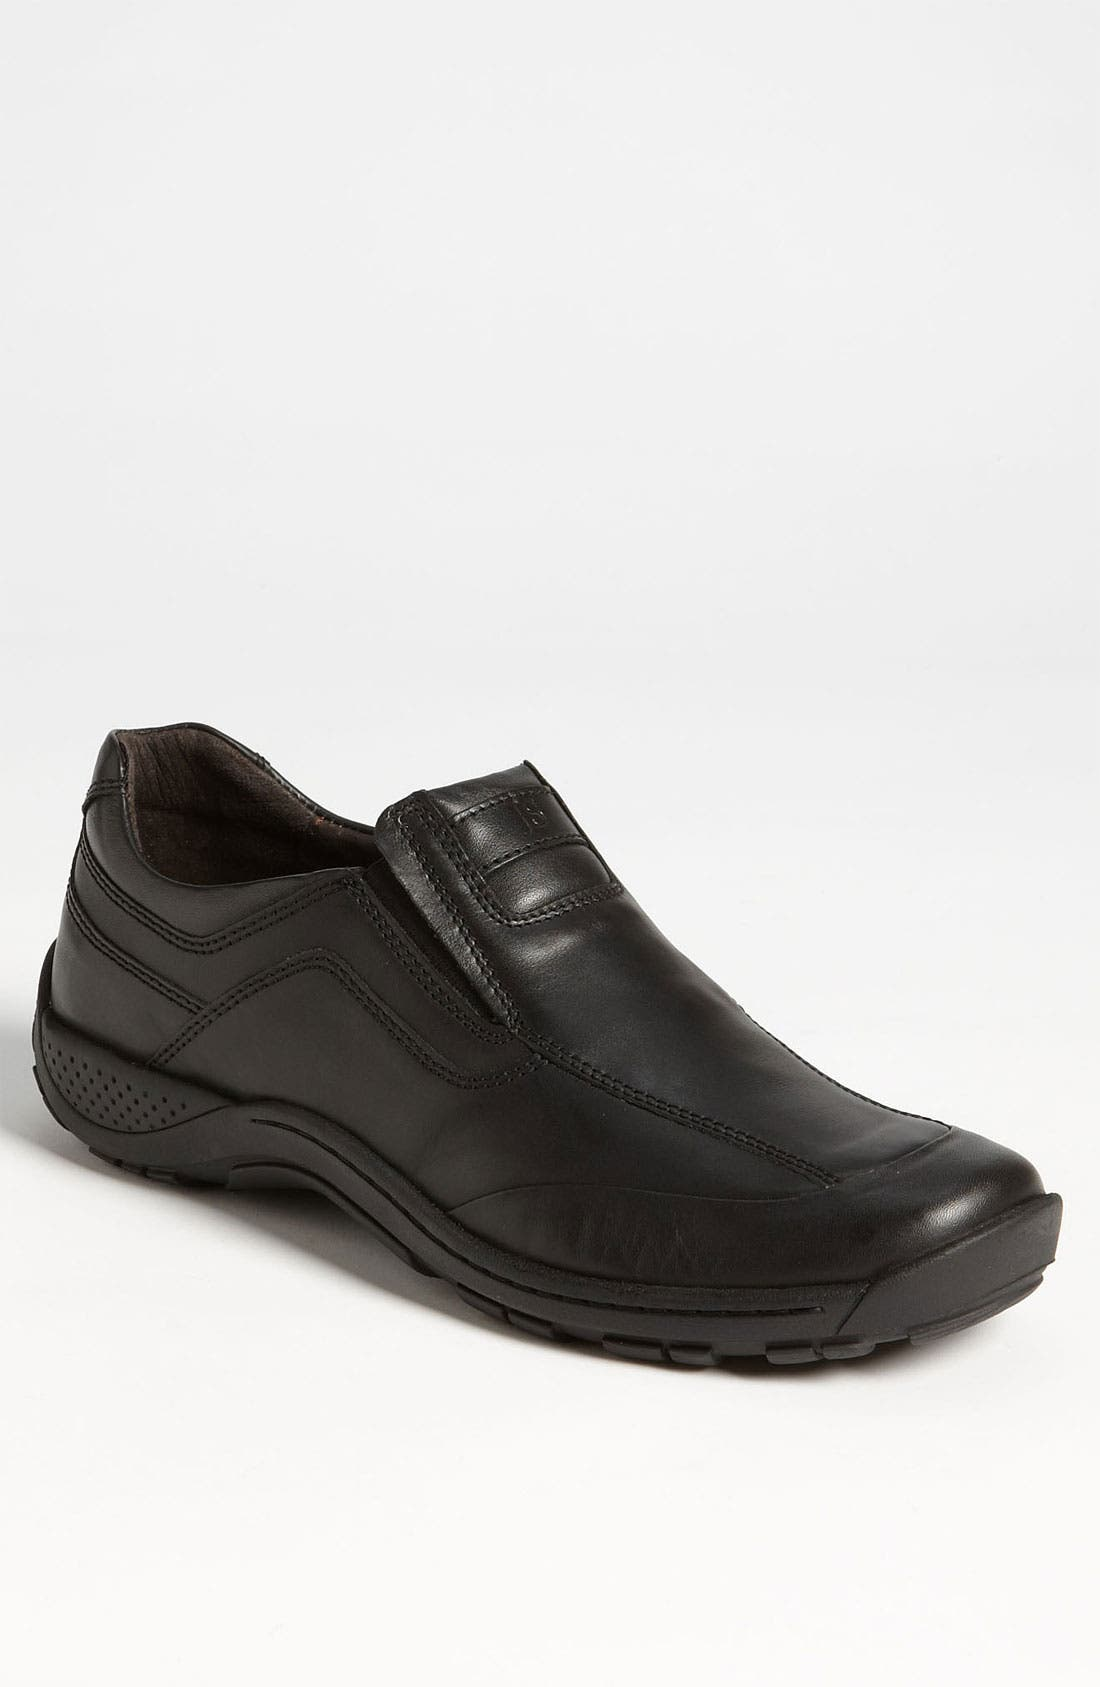 Main Image - Josef Seibel 'Nolan' Slip-On